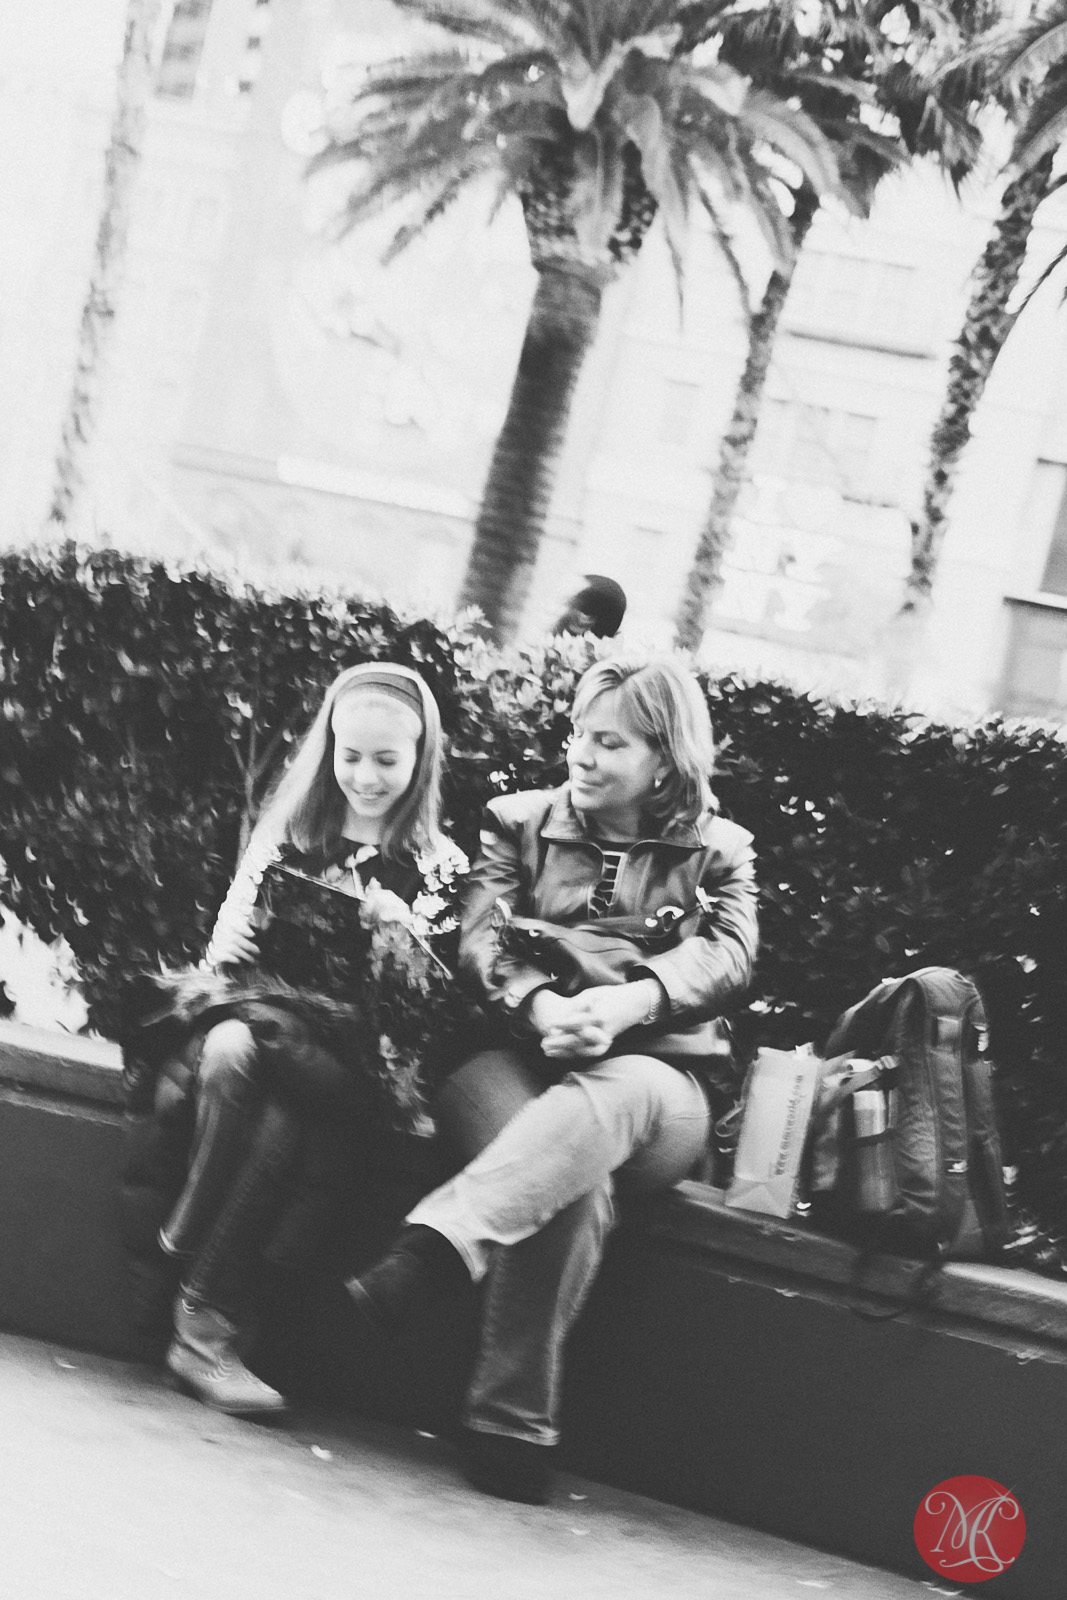 las vegas mother and daughter enjoying a rest on a busy street